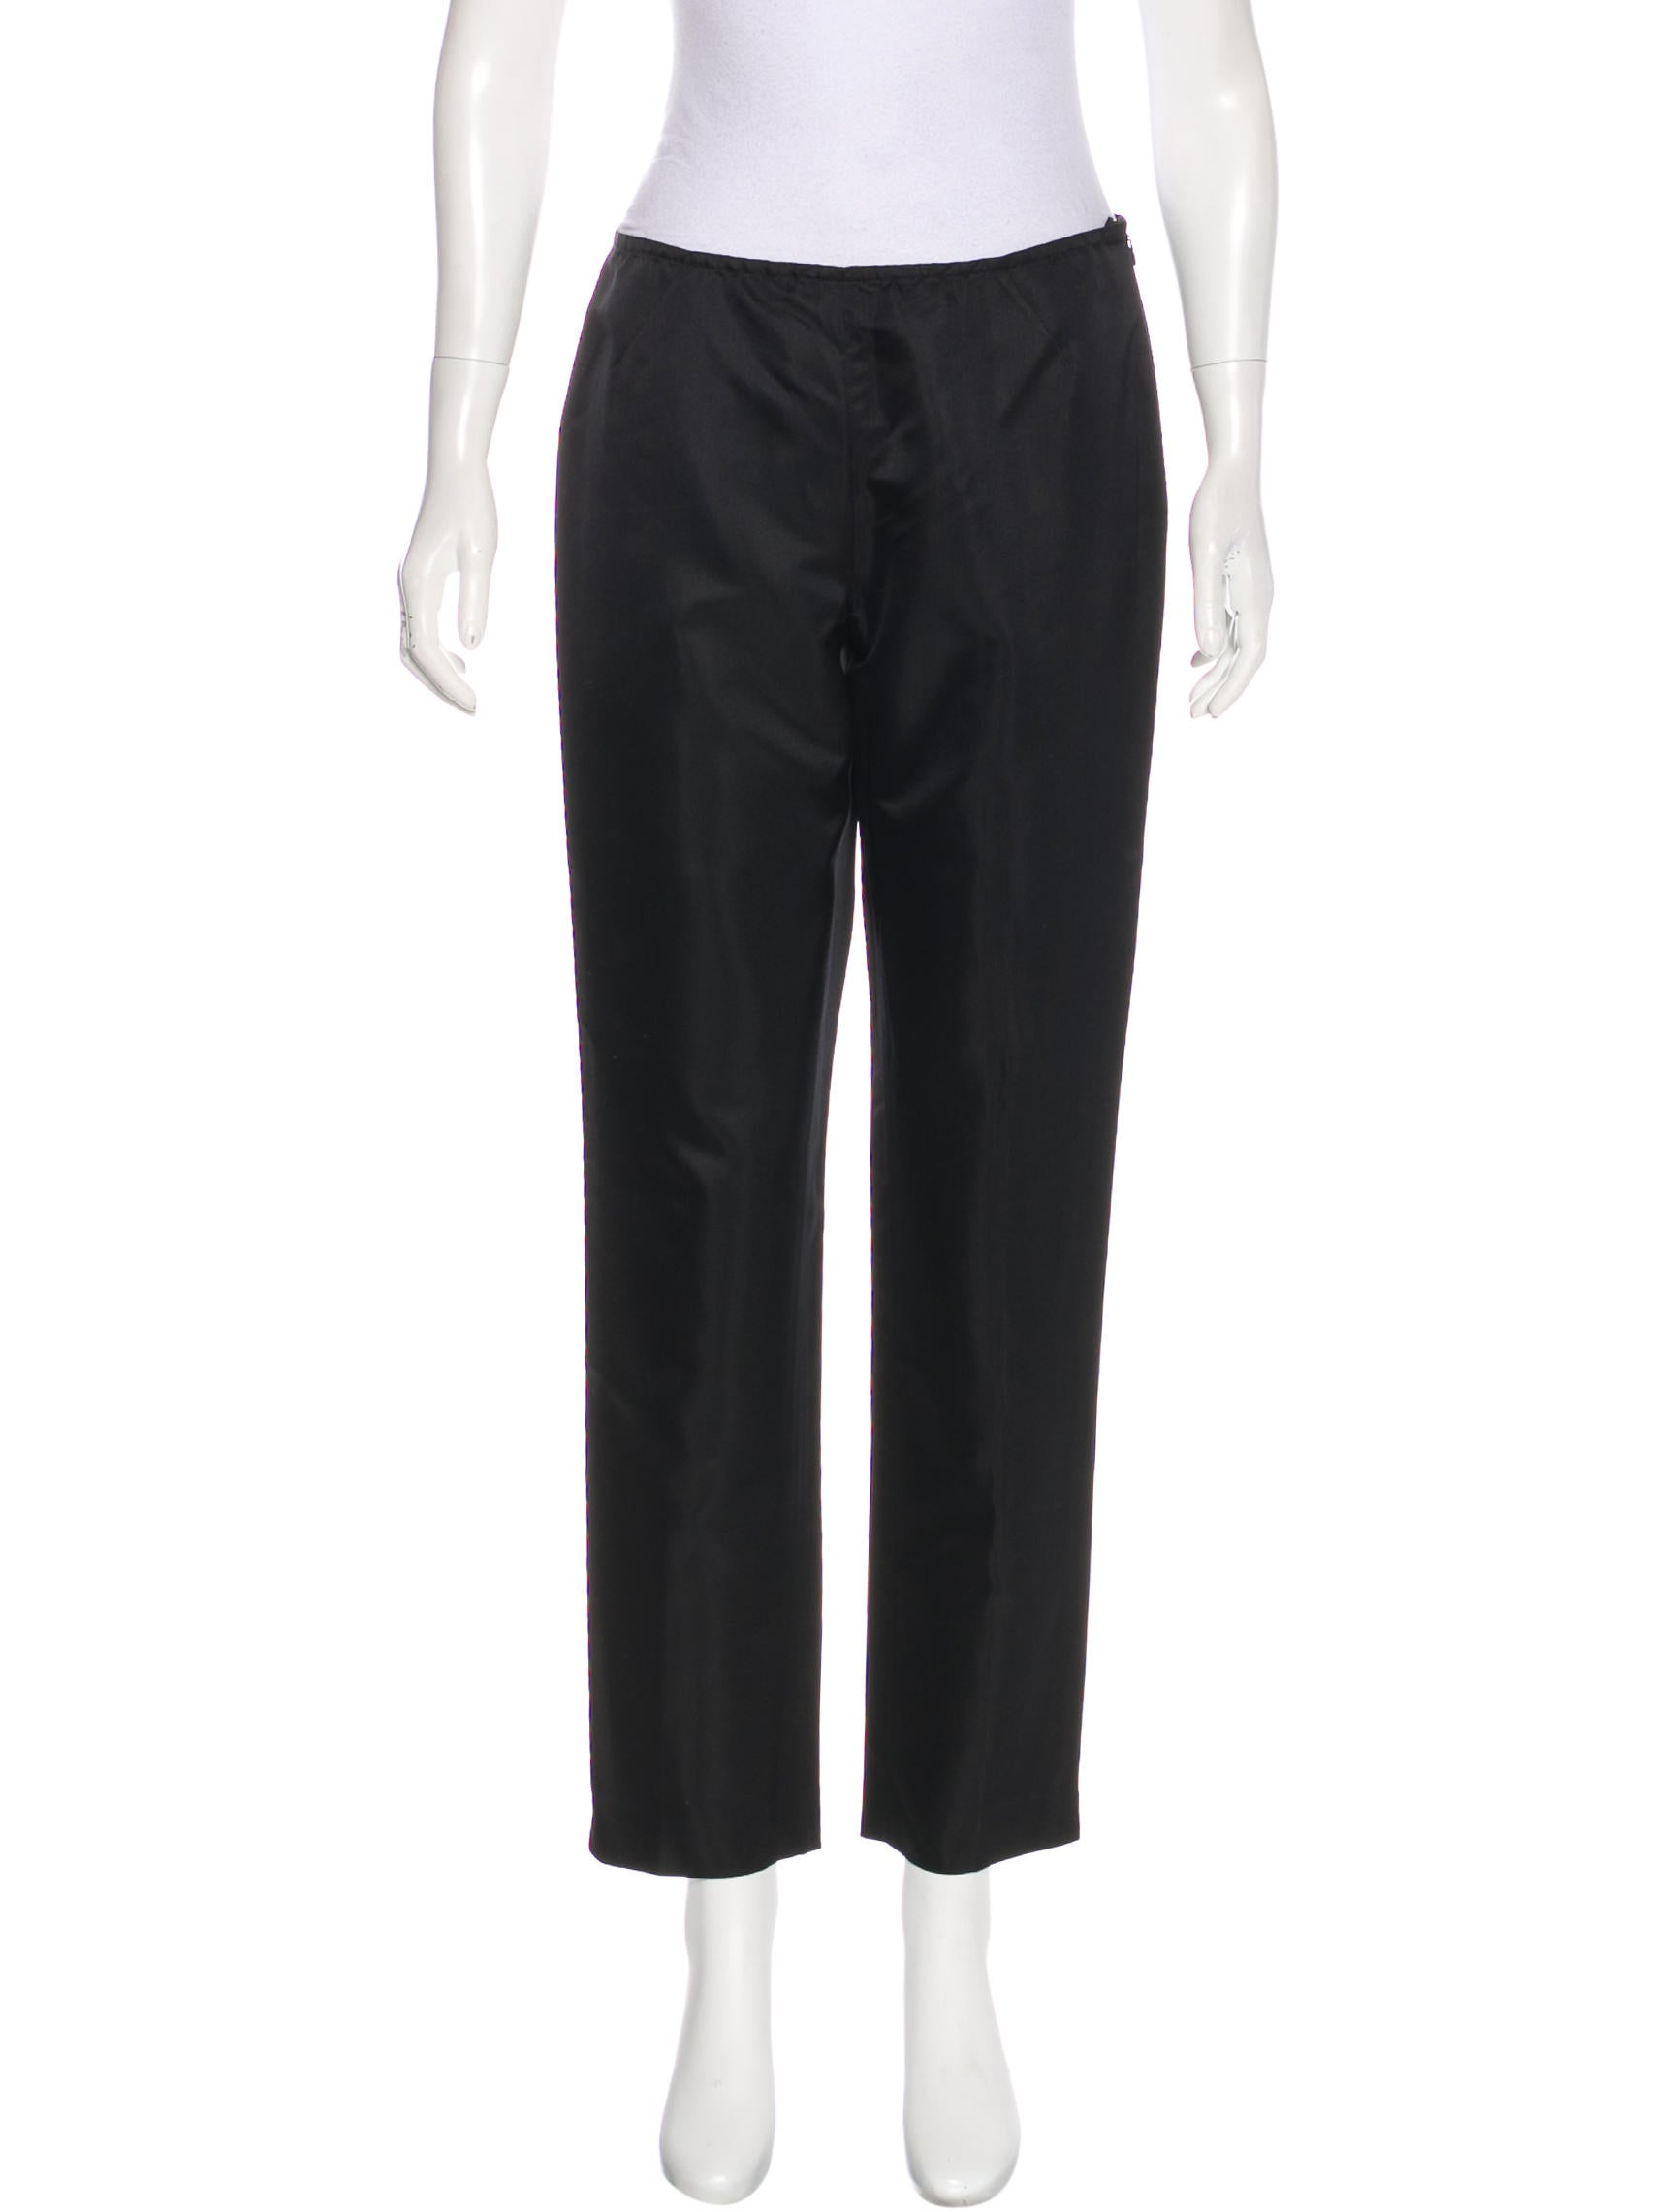 Lafayette 148 Mid-Rise Satin Pants Deals Cheap Online Clearance Finishline ltoY55